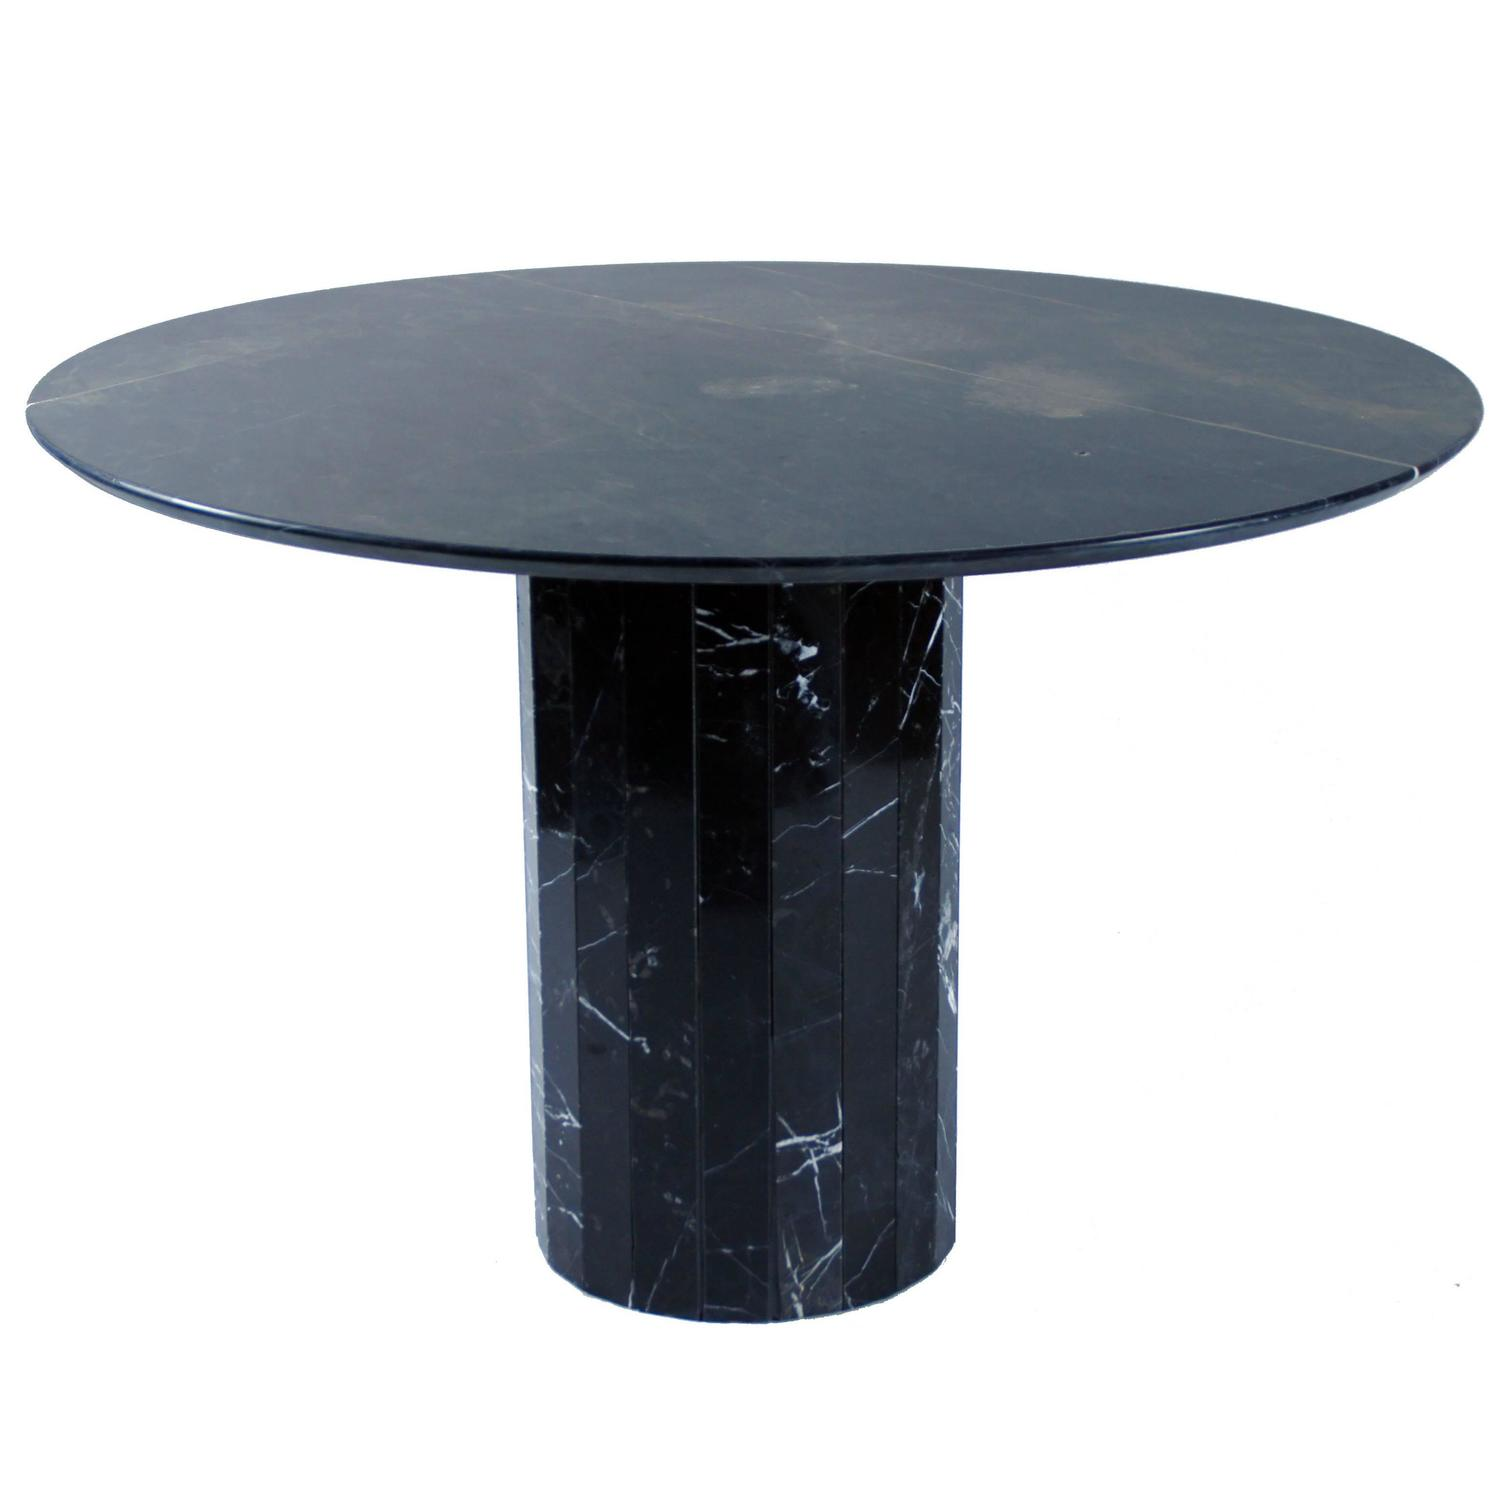 Italian Dining Round Table In Black Marble Circa 1970 At 1stdibs